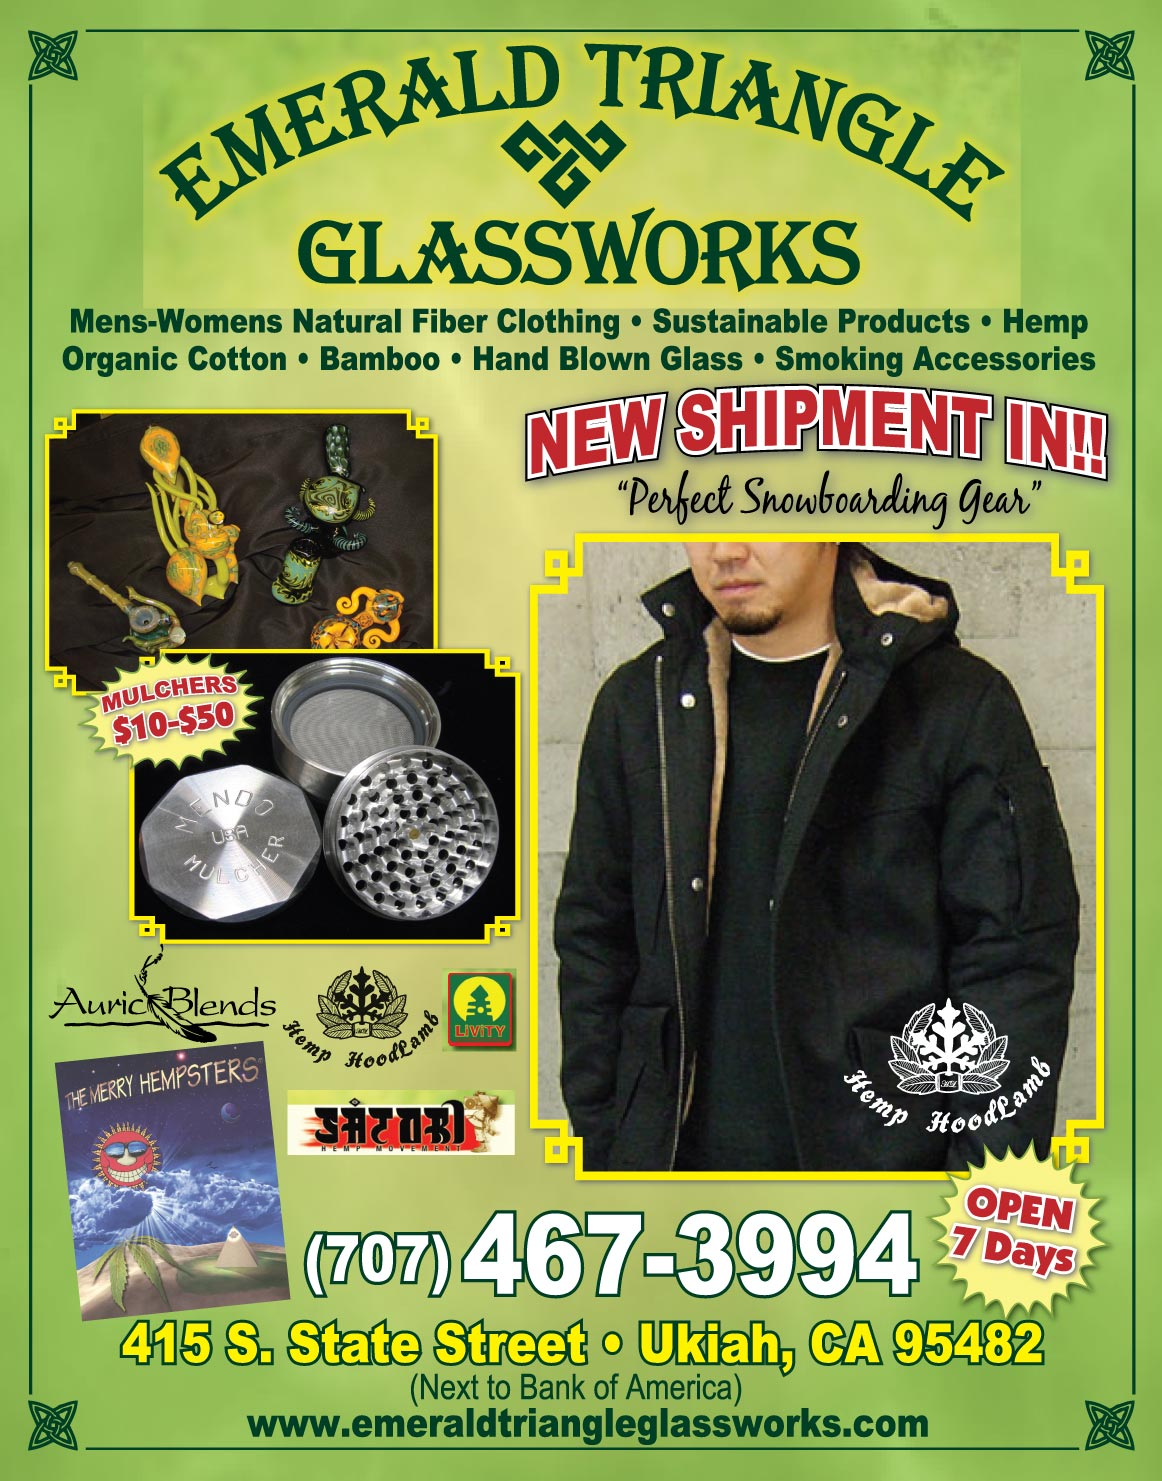 Emerald Triangle Glassworks